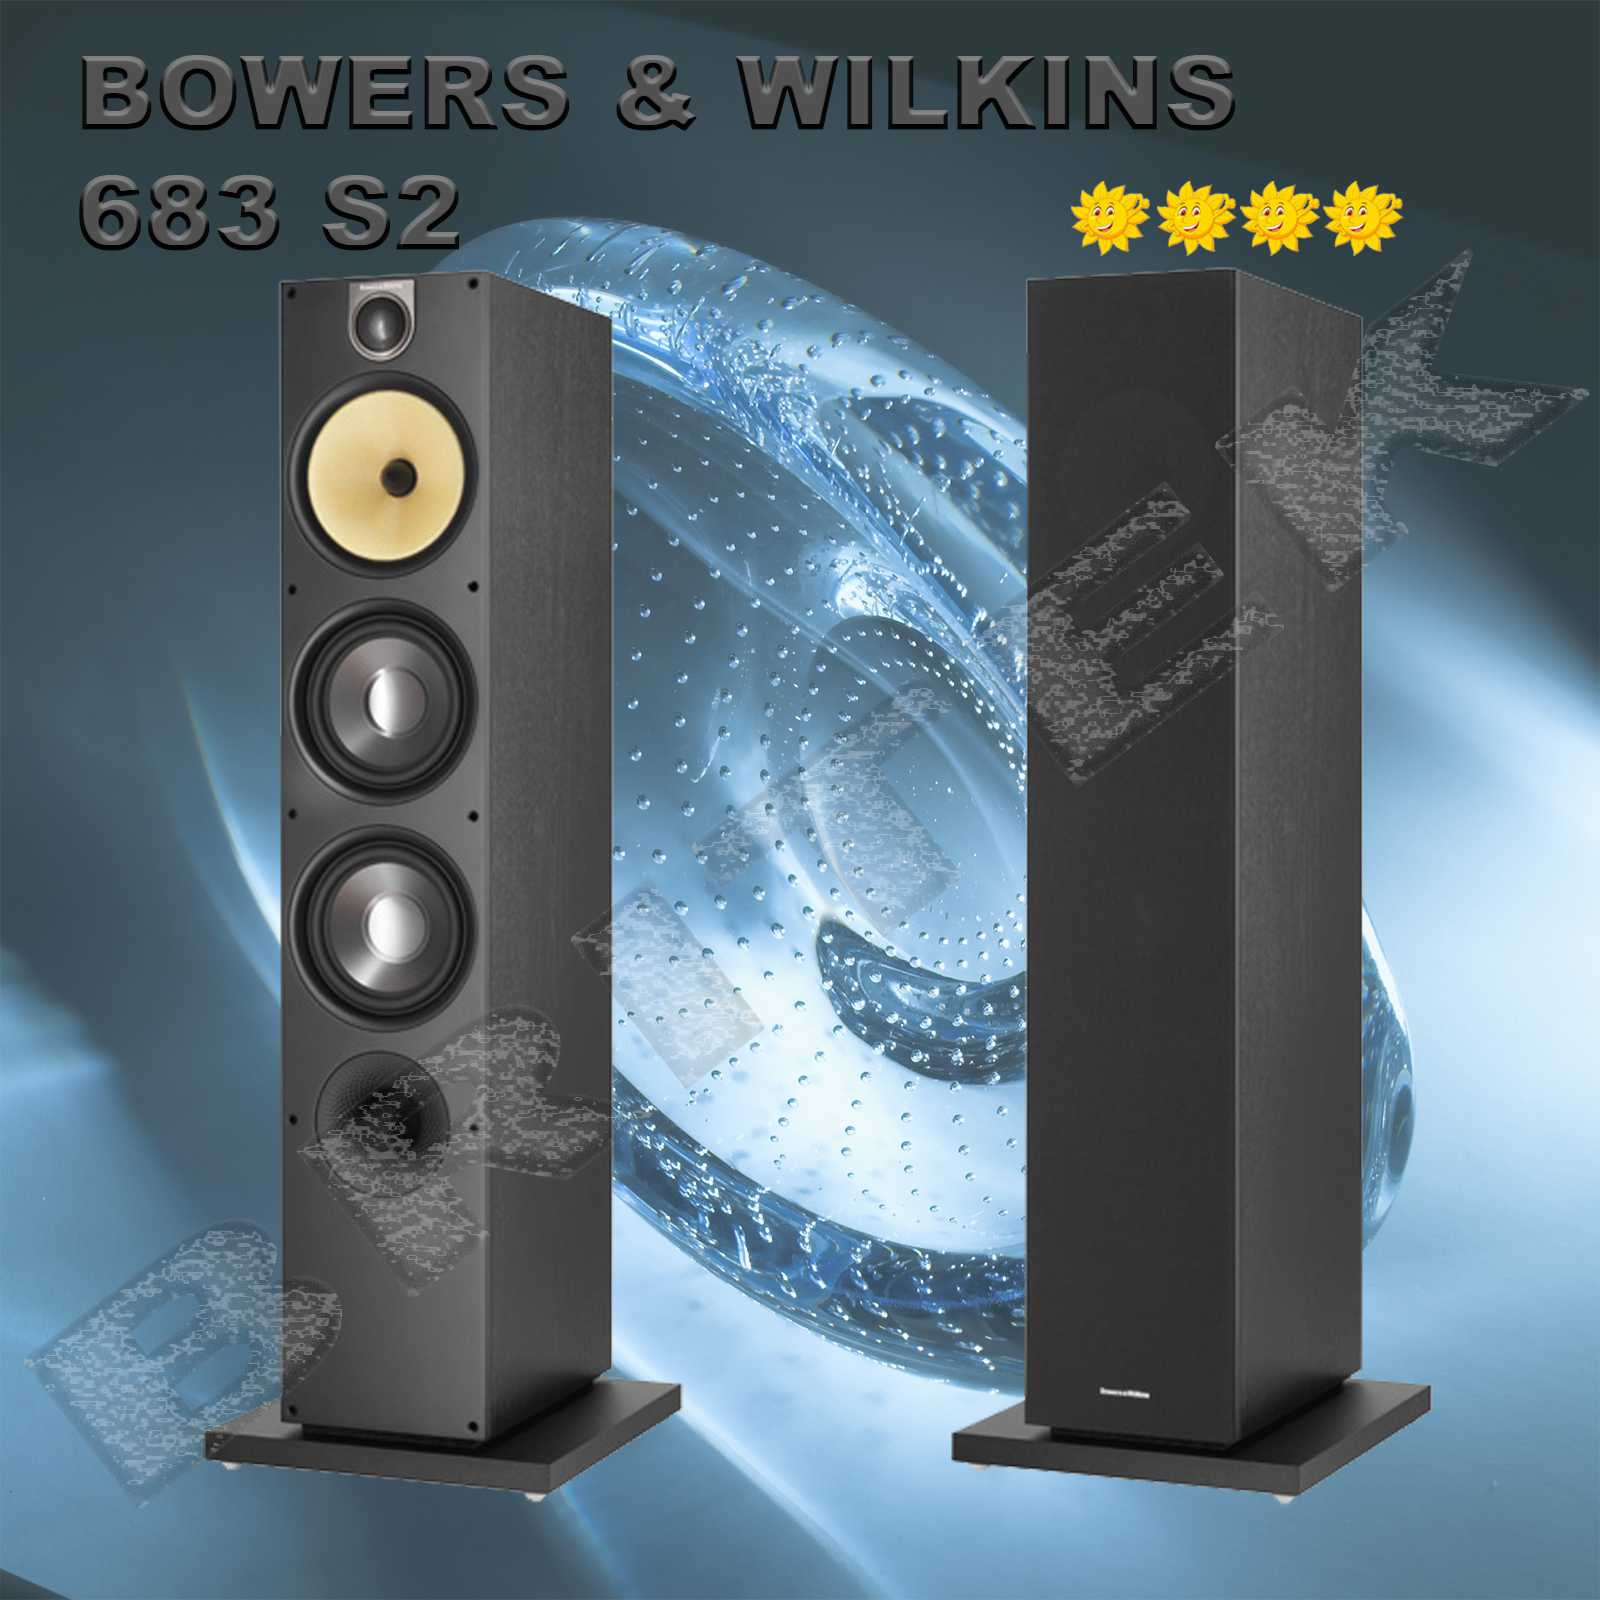 bowers wilkins 683 s2 sloupov repro 3p sma. Black Bedroom Furniture Sets. Home Design Ideas